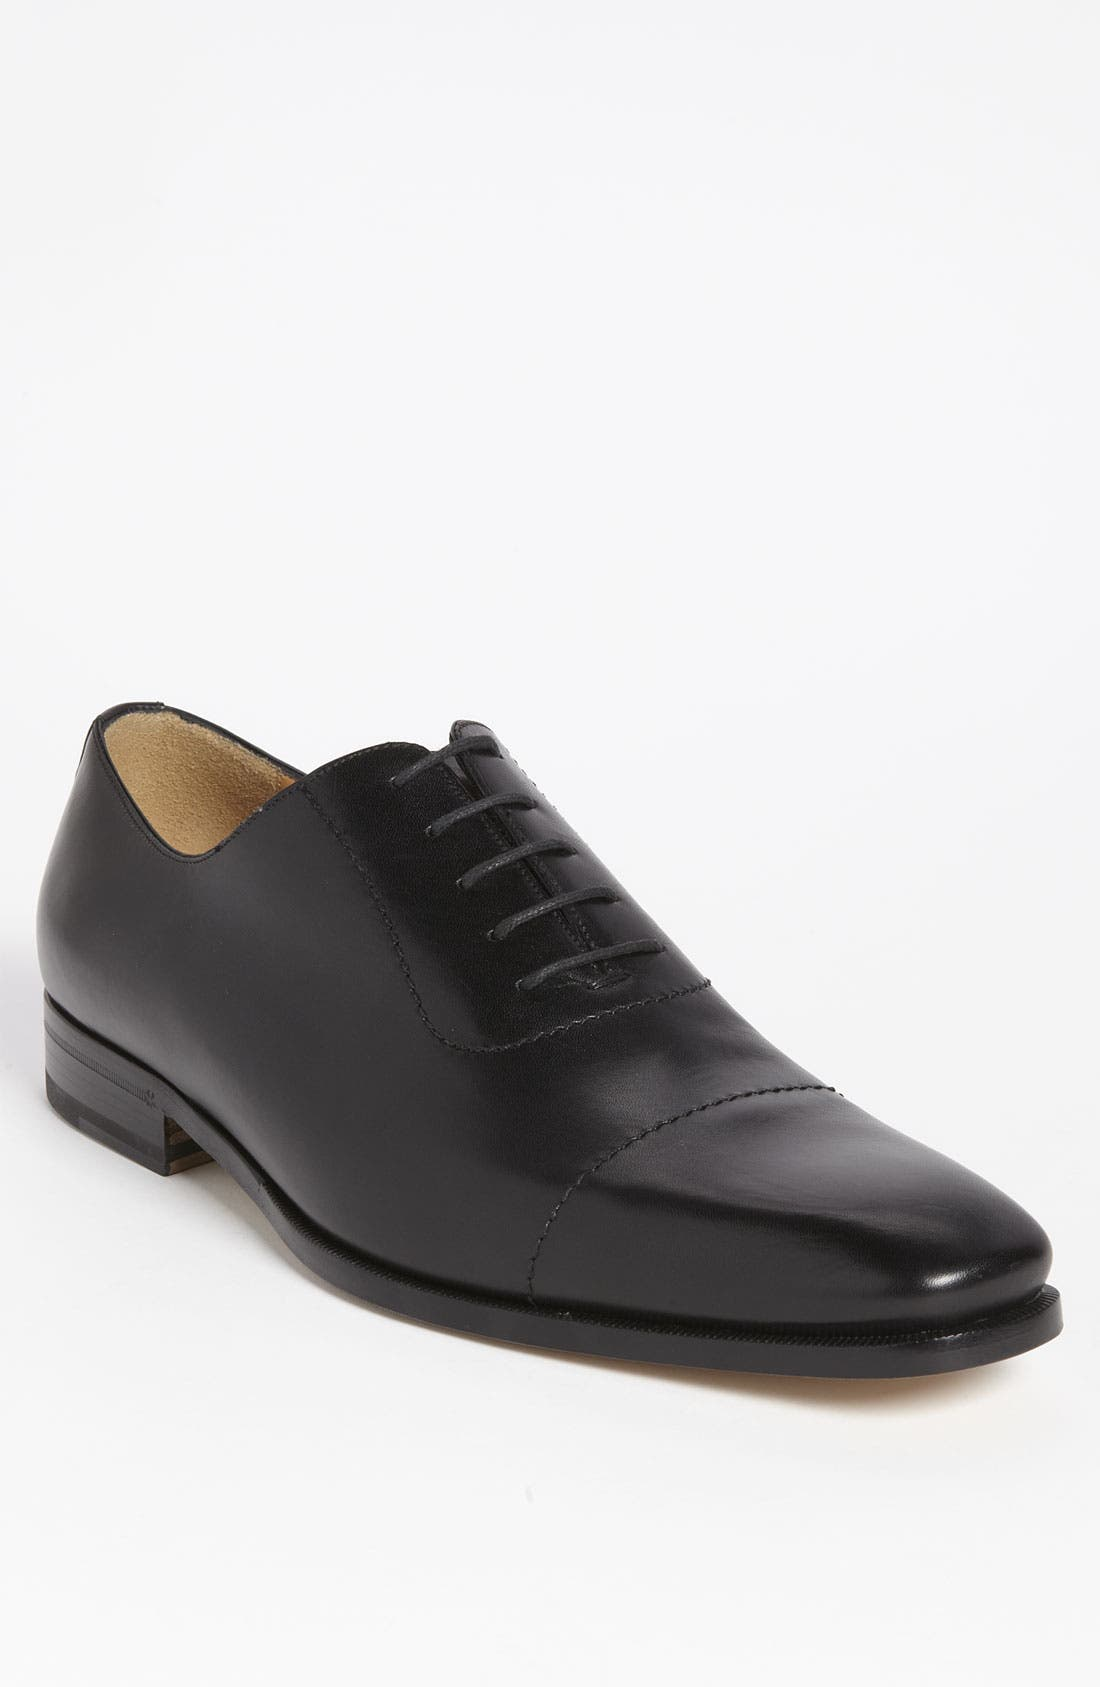 Alternate Image 1 Selected - Gucci 'Kyoto' Cap Toe Oxford